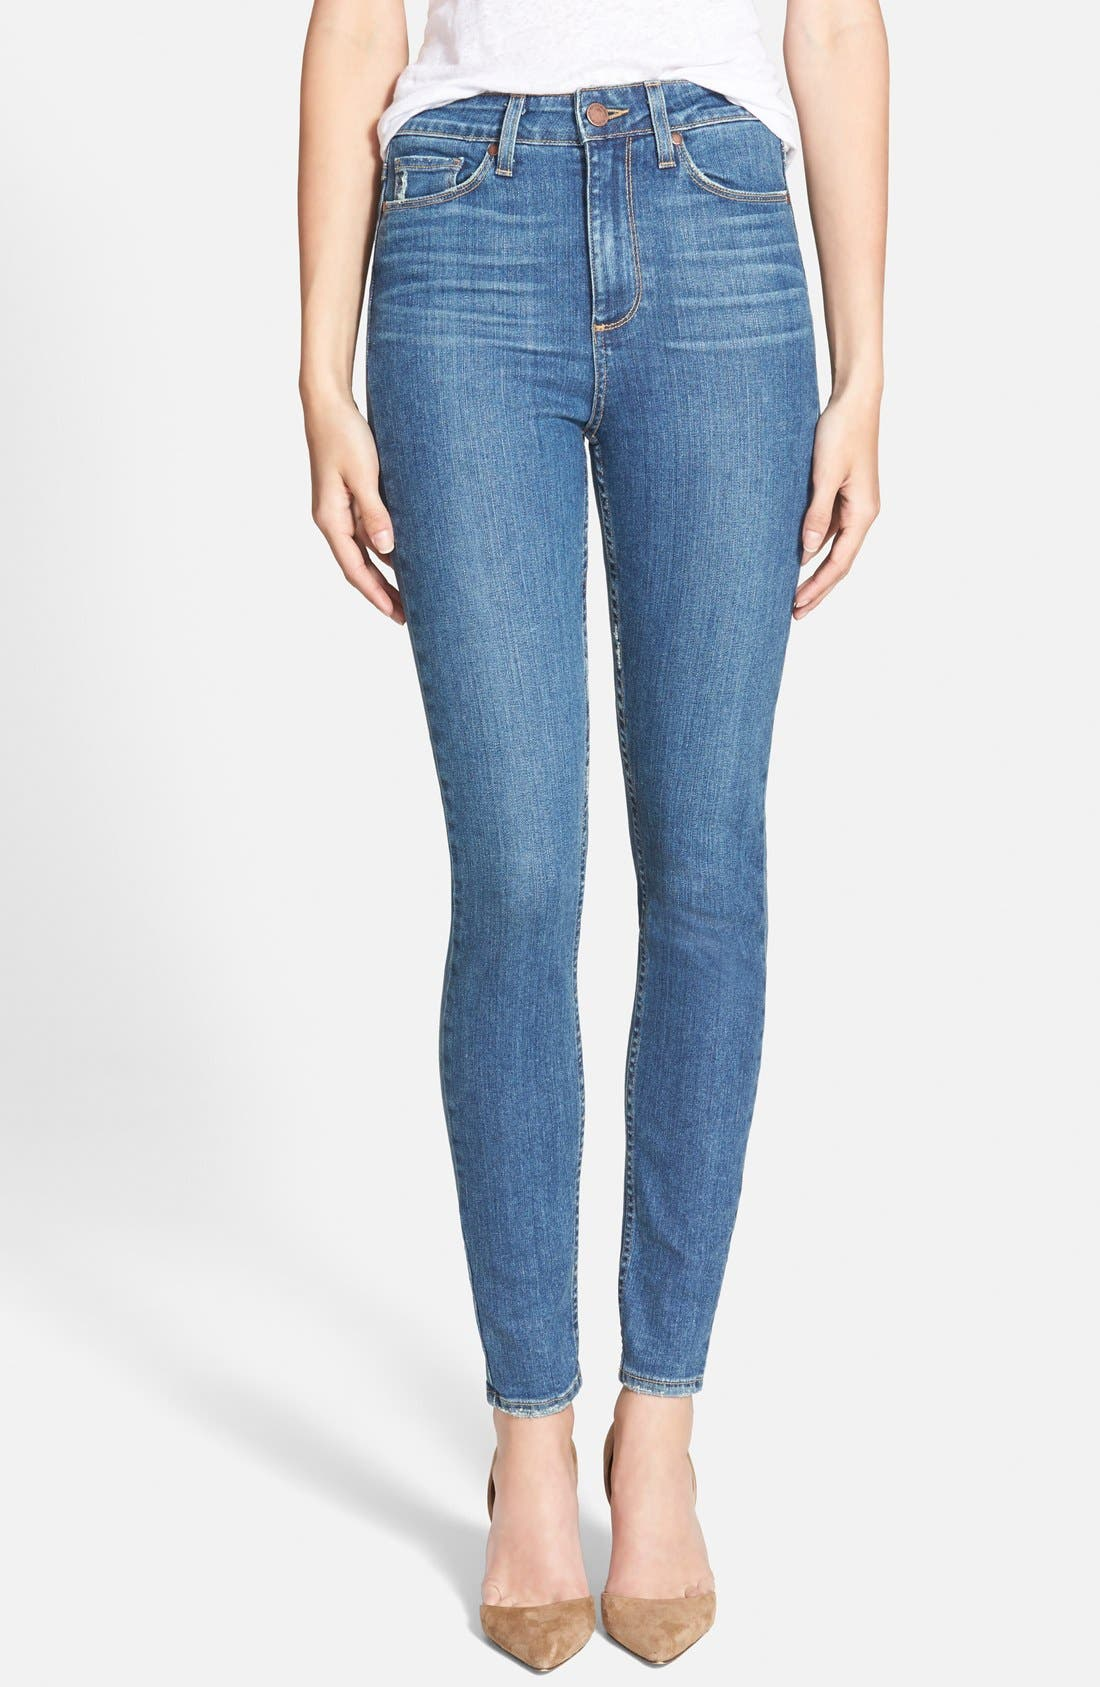 Alternate Image 1 Selected - Paige Denim 'Margo' High Rise Ultra Skinny Jeans (Mira)